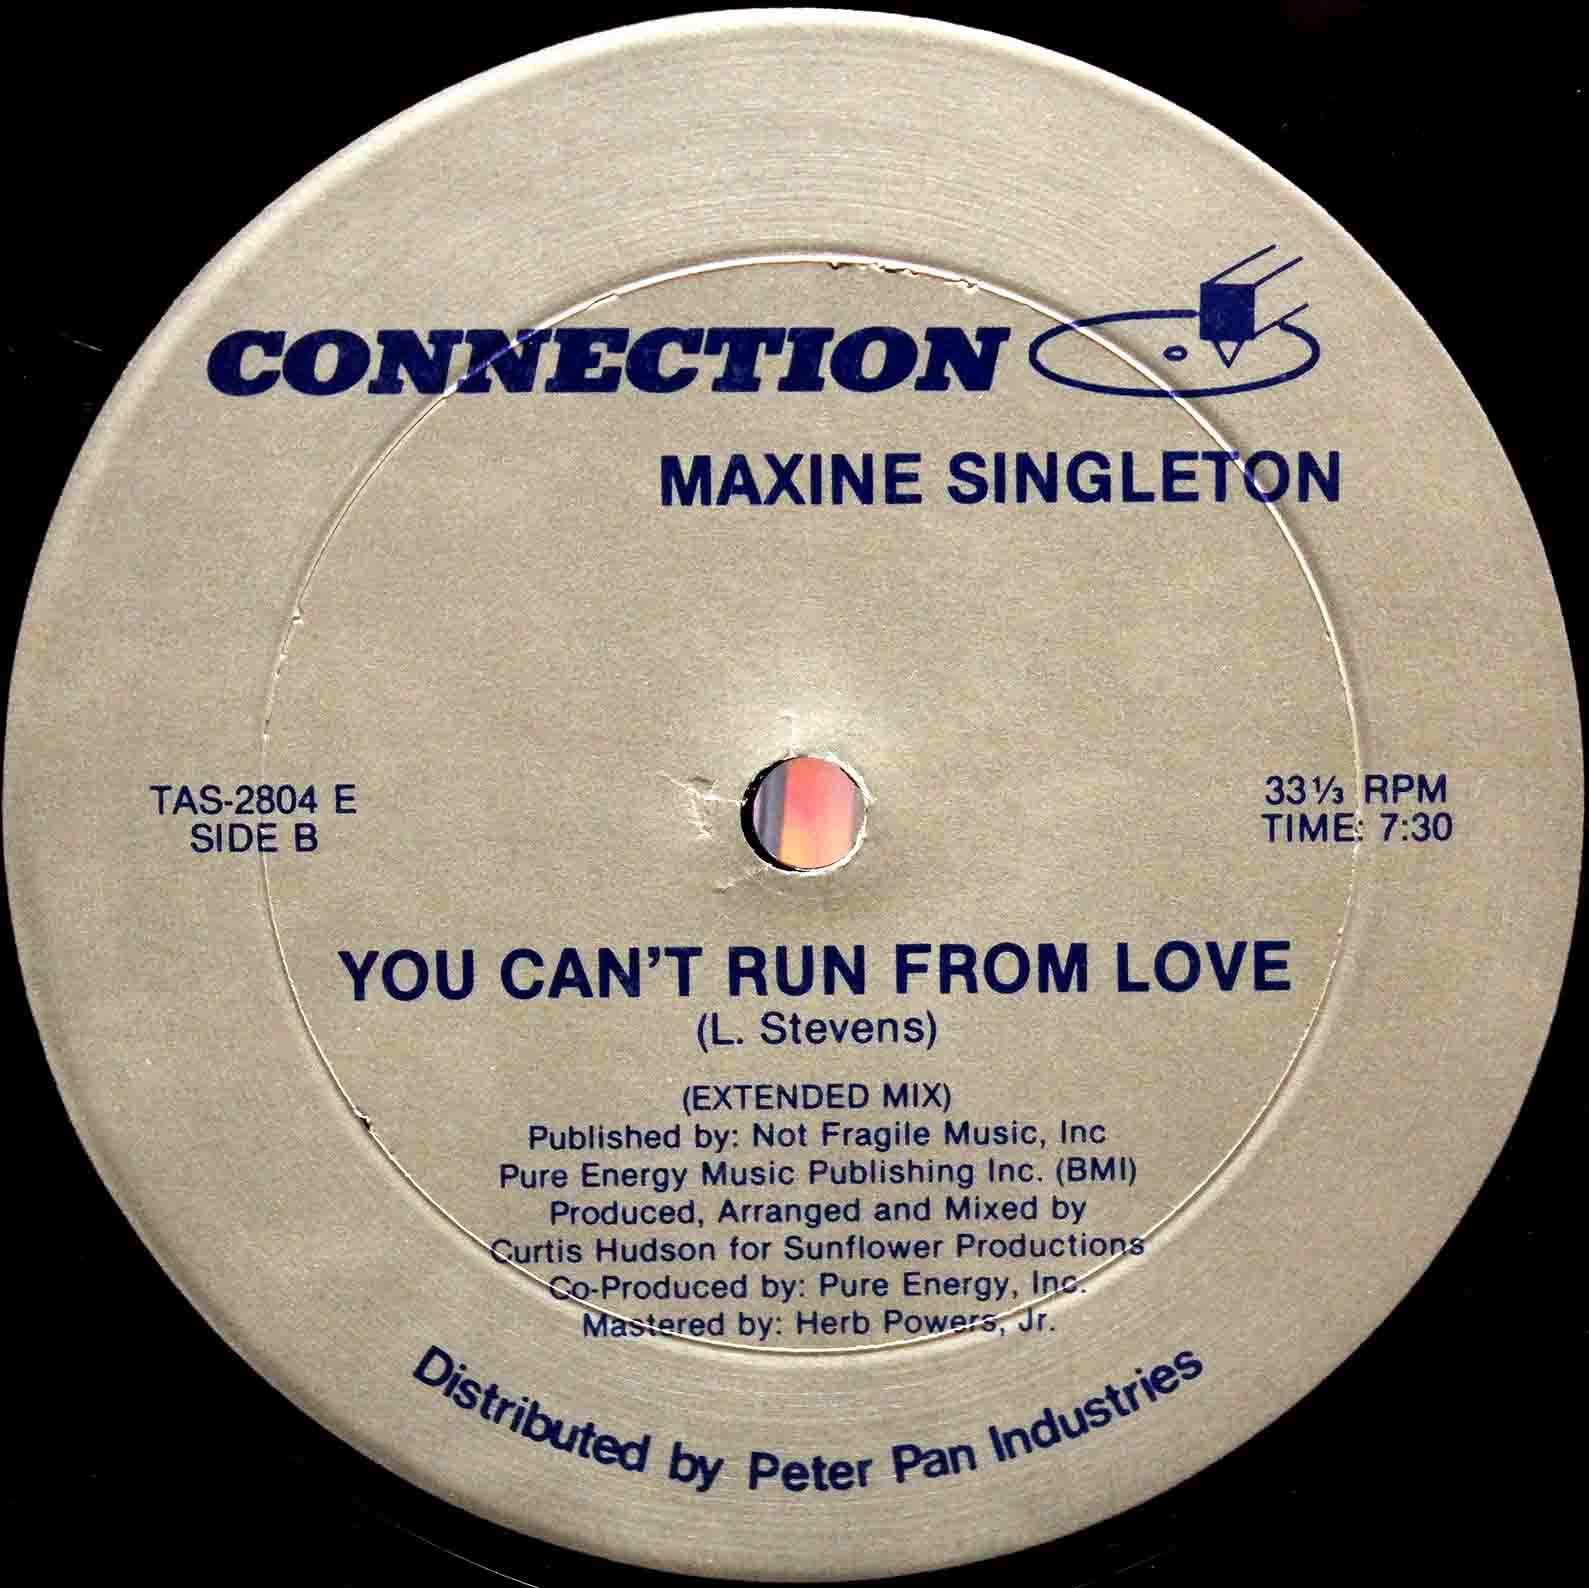 Maxine Singleton – You Cant Run From Love 04